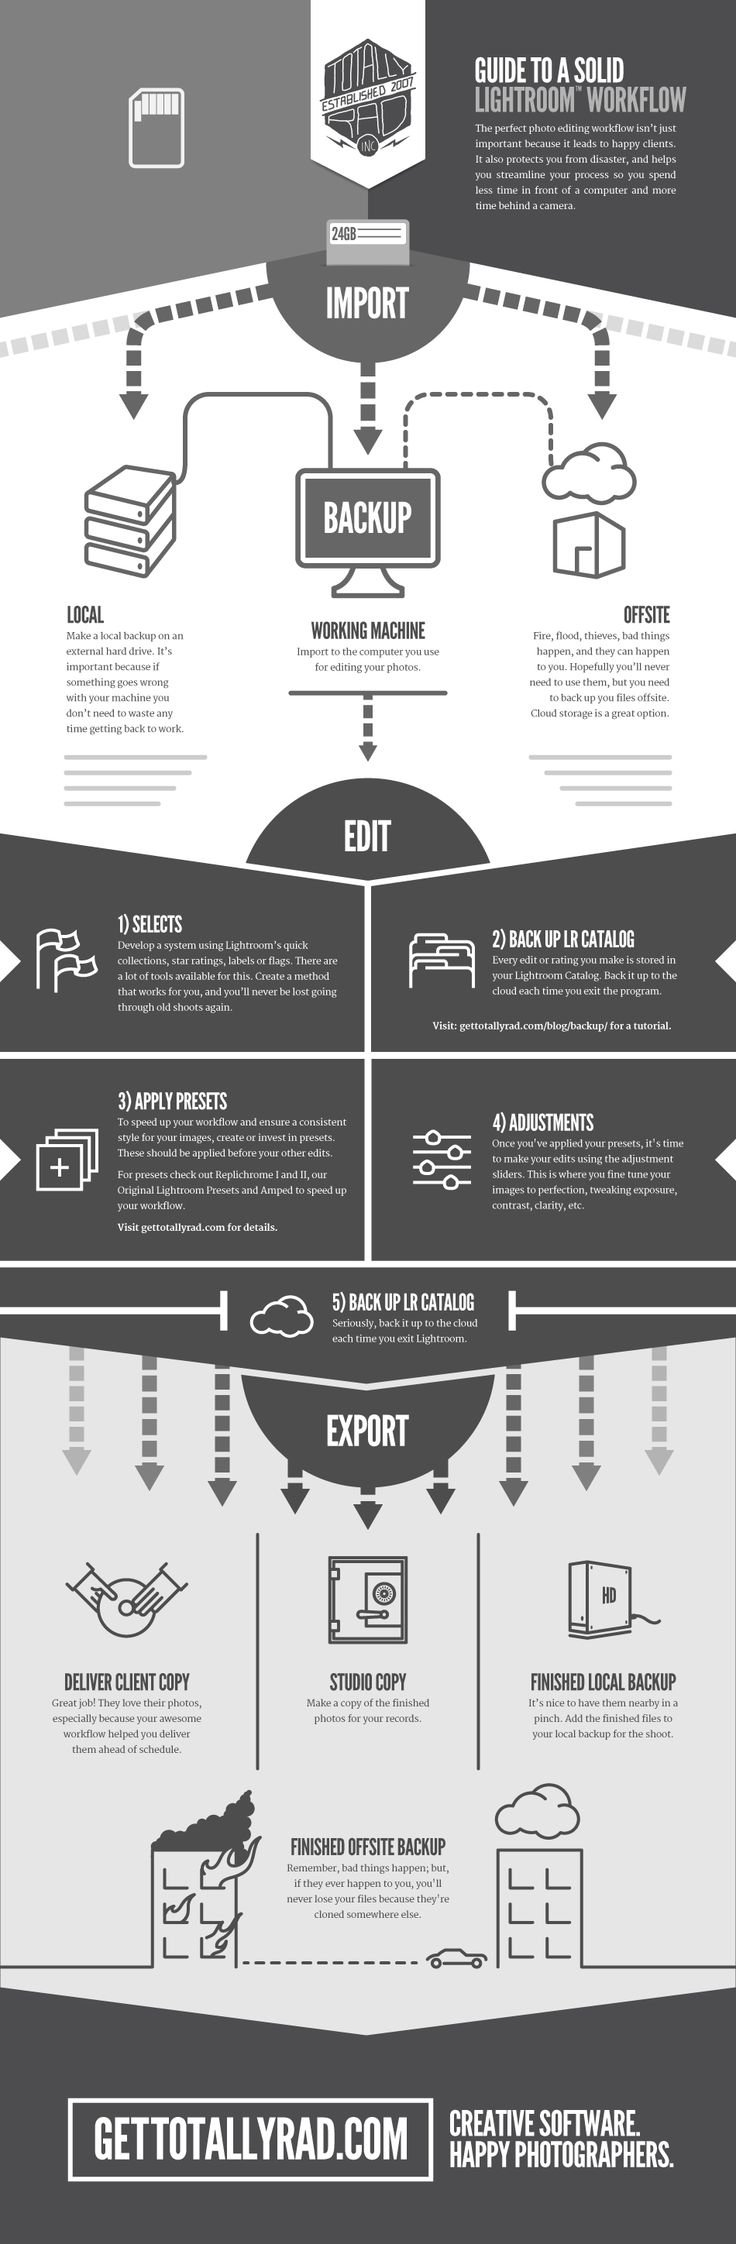 An easy to follow guide to the perfect Lightroom workflow for photo editing.   Visit http://www.gettotallyrad.com for more inforgraphics, photography tools, and tutorials.